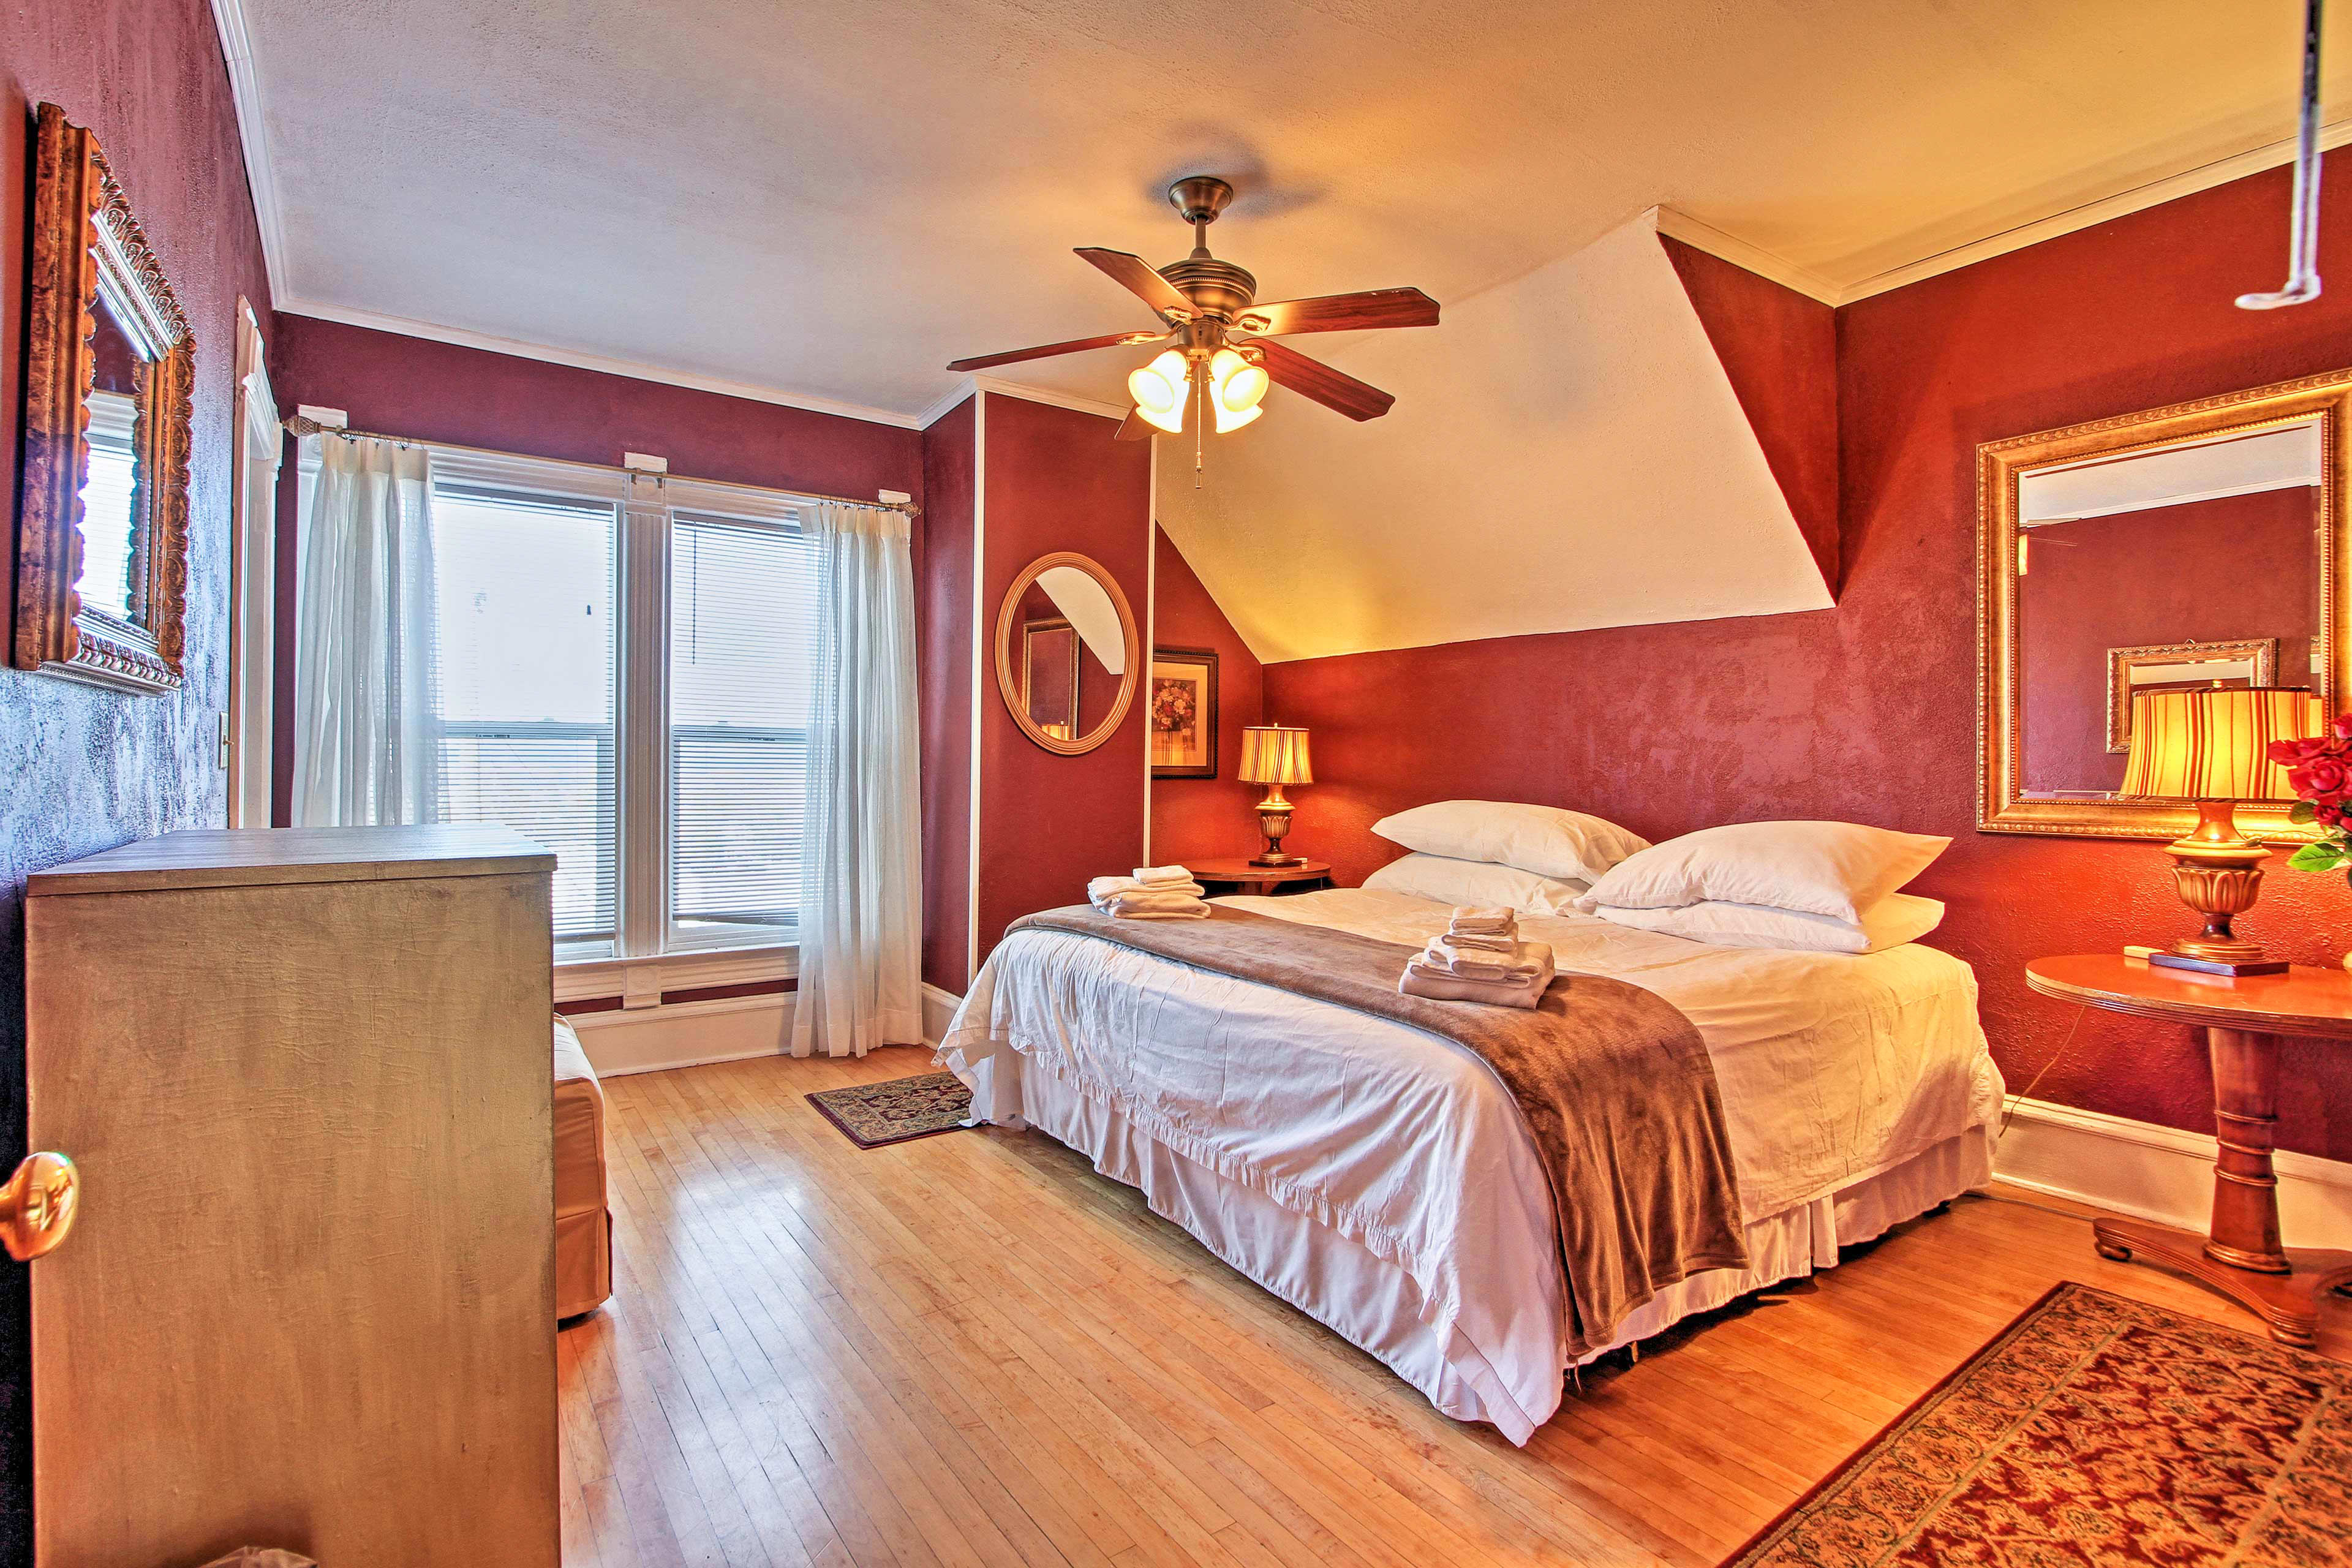 Enjoy beautiful mountain views out of this room's floor-to-ceiling windows.